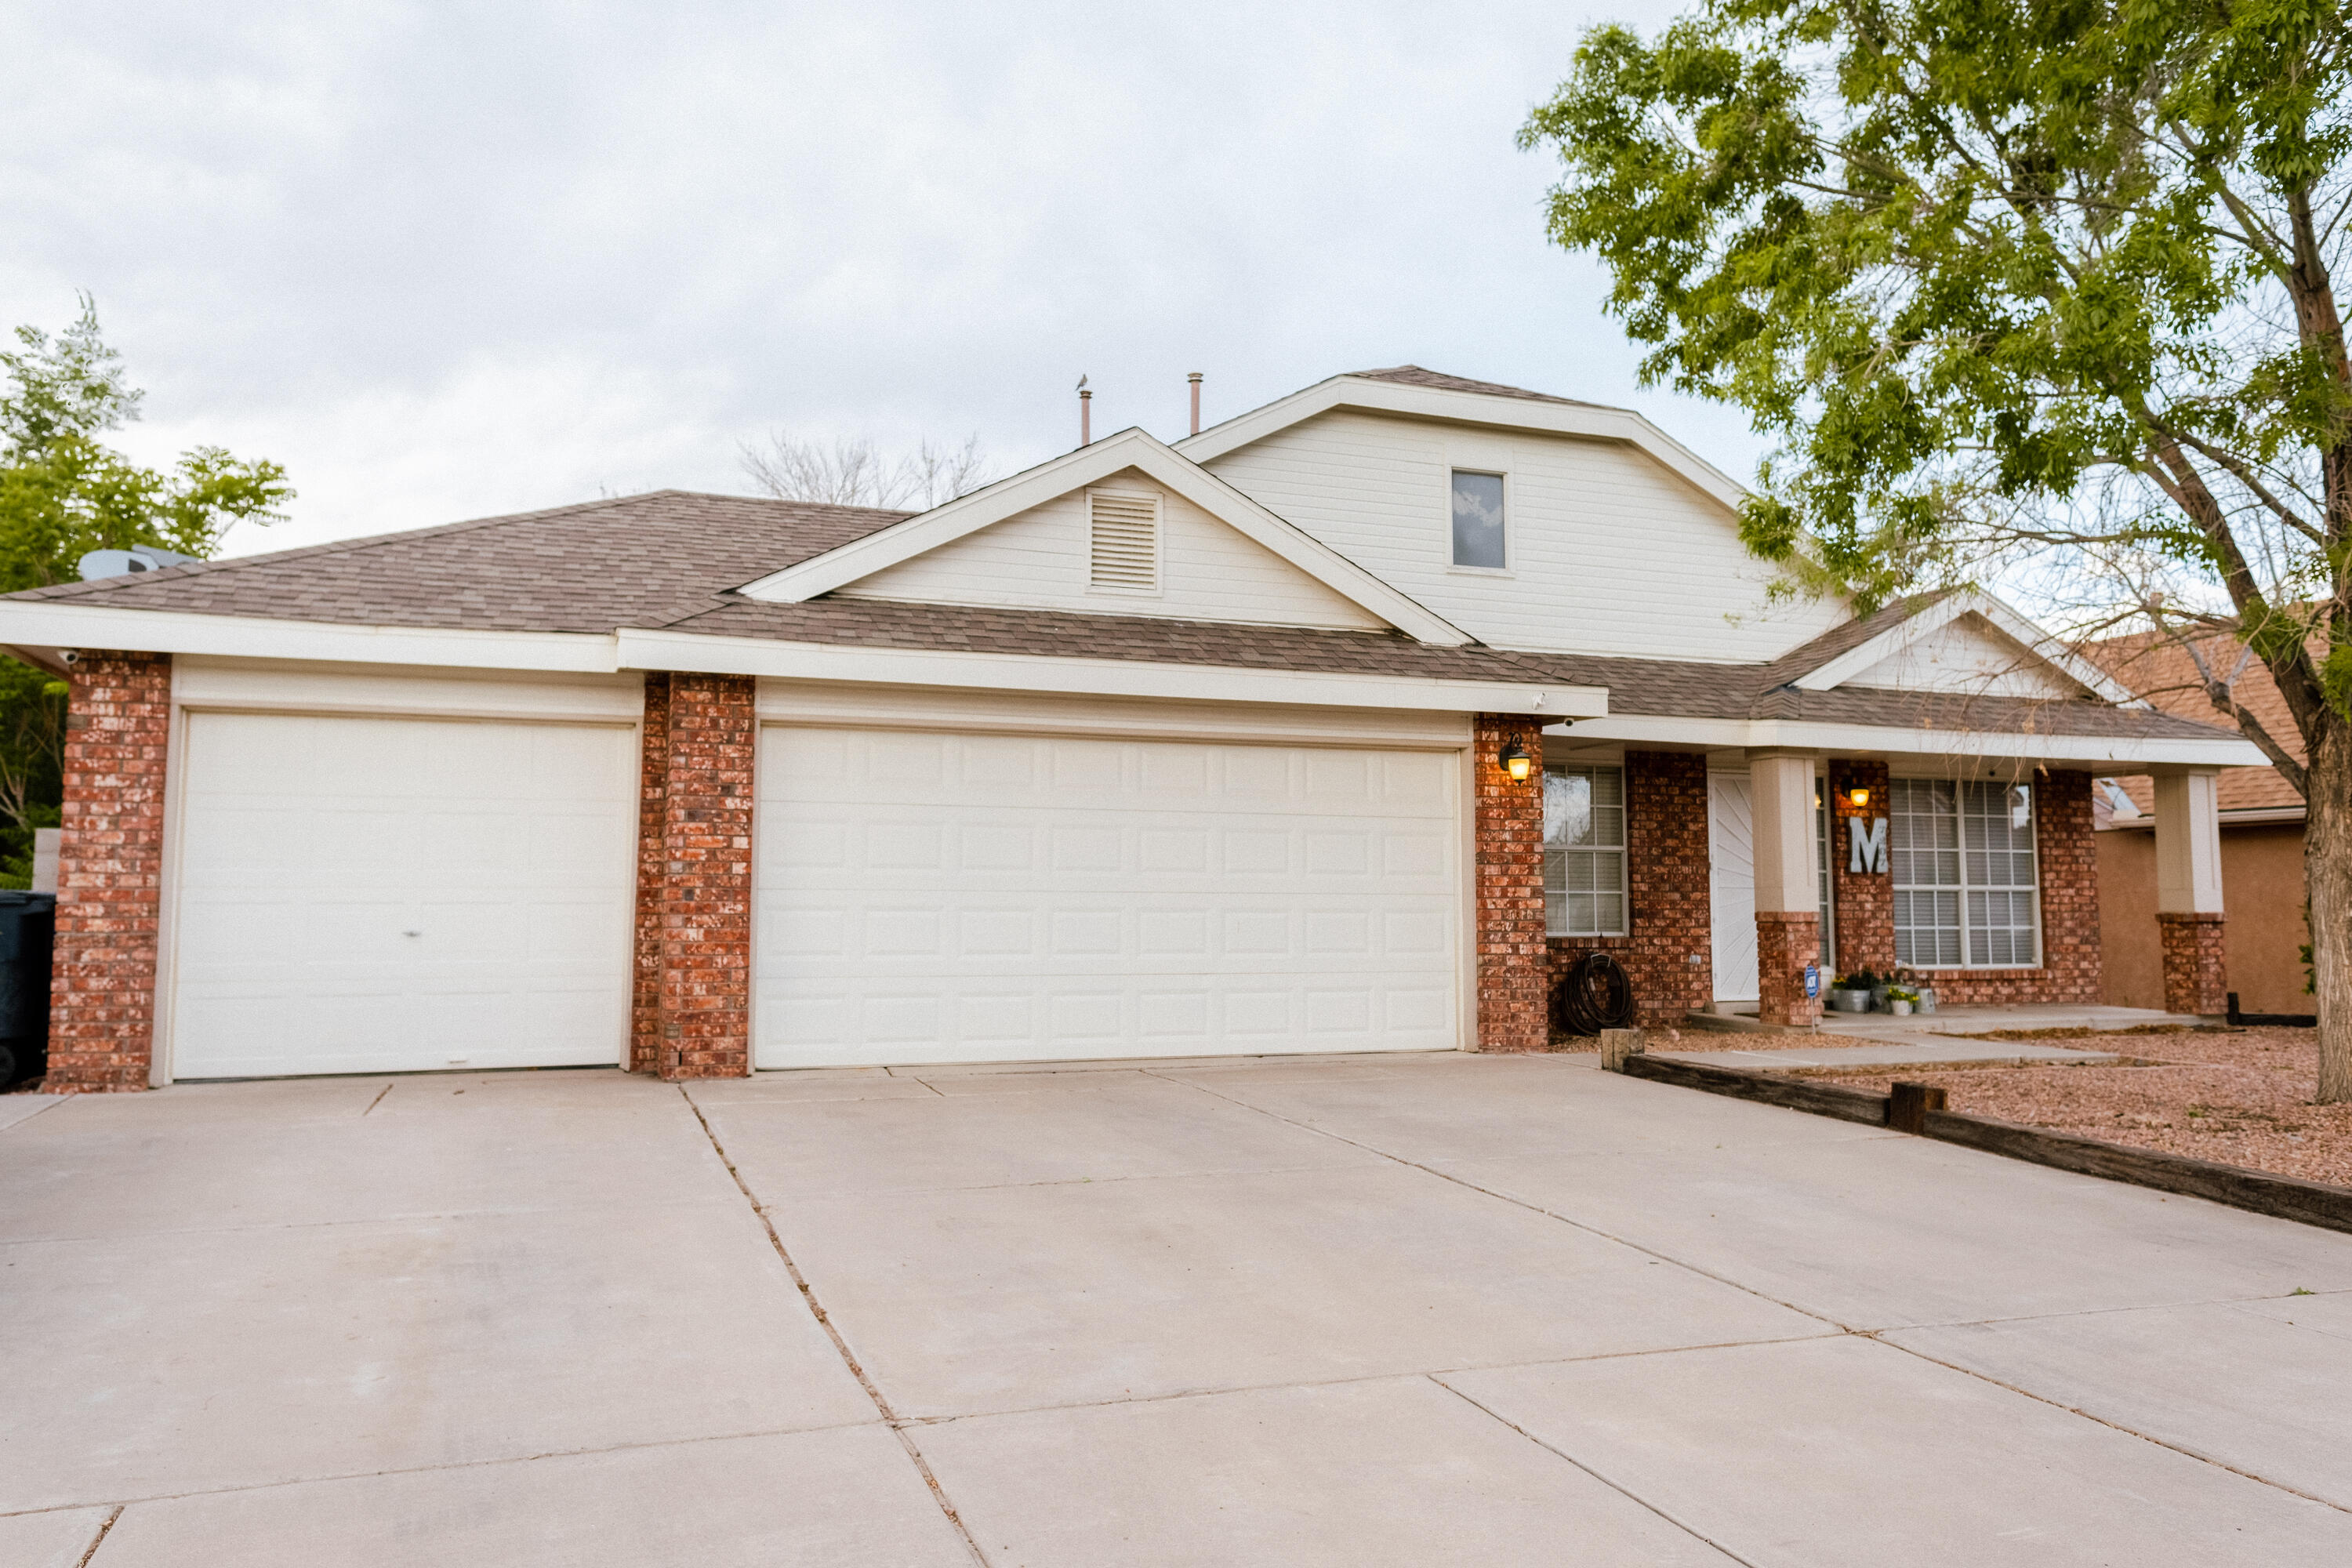 One story.  1600 square feet, 3 bedroom, 2 bath, 3 car garage! Open floor plan with gorgeous updated kitchen! Custom cabinets with stainless steel appliances. Huge covered patio with mature trees in backyard. Refrigerated air. Come see this one before its gone!